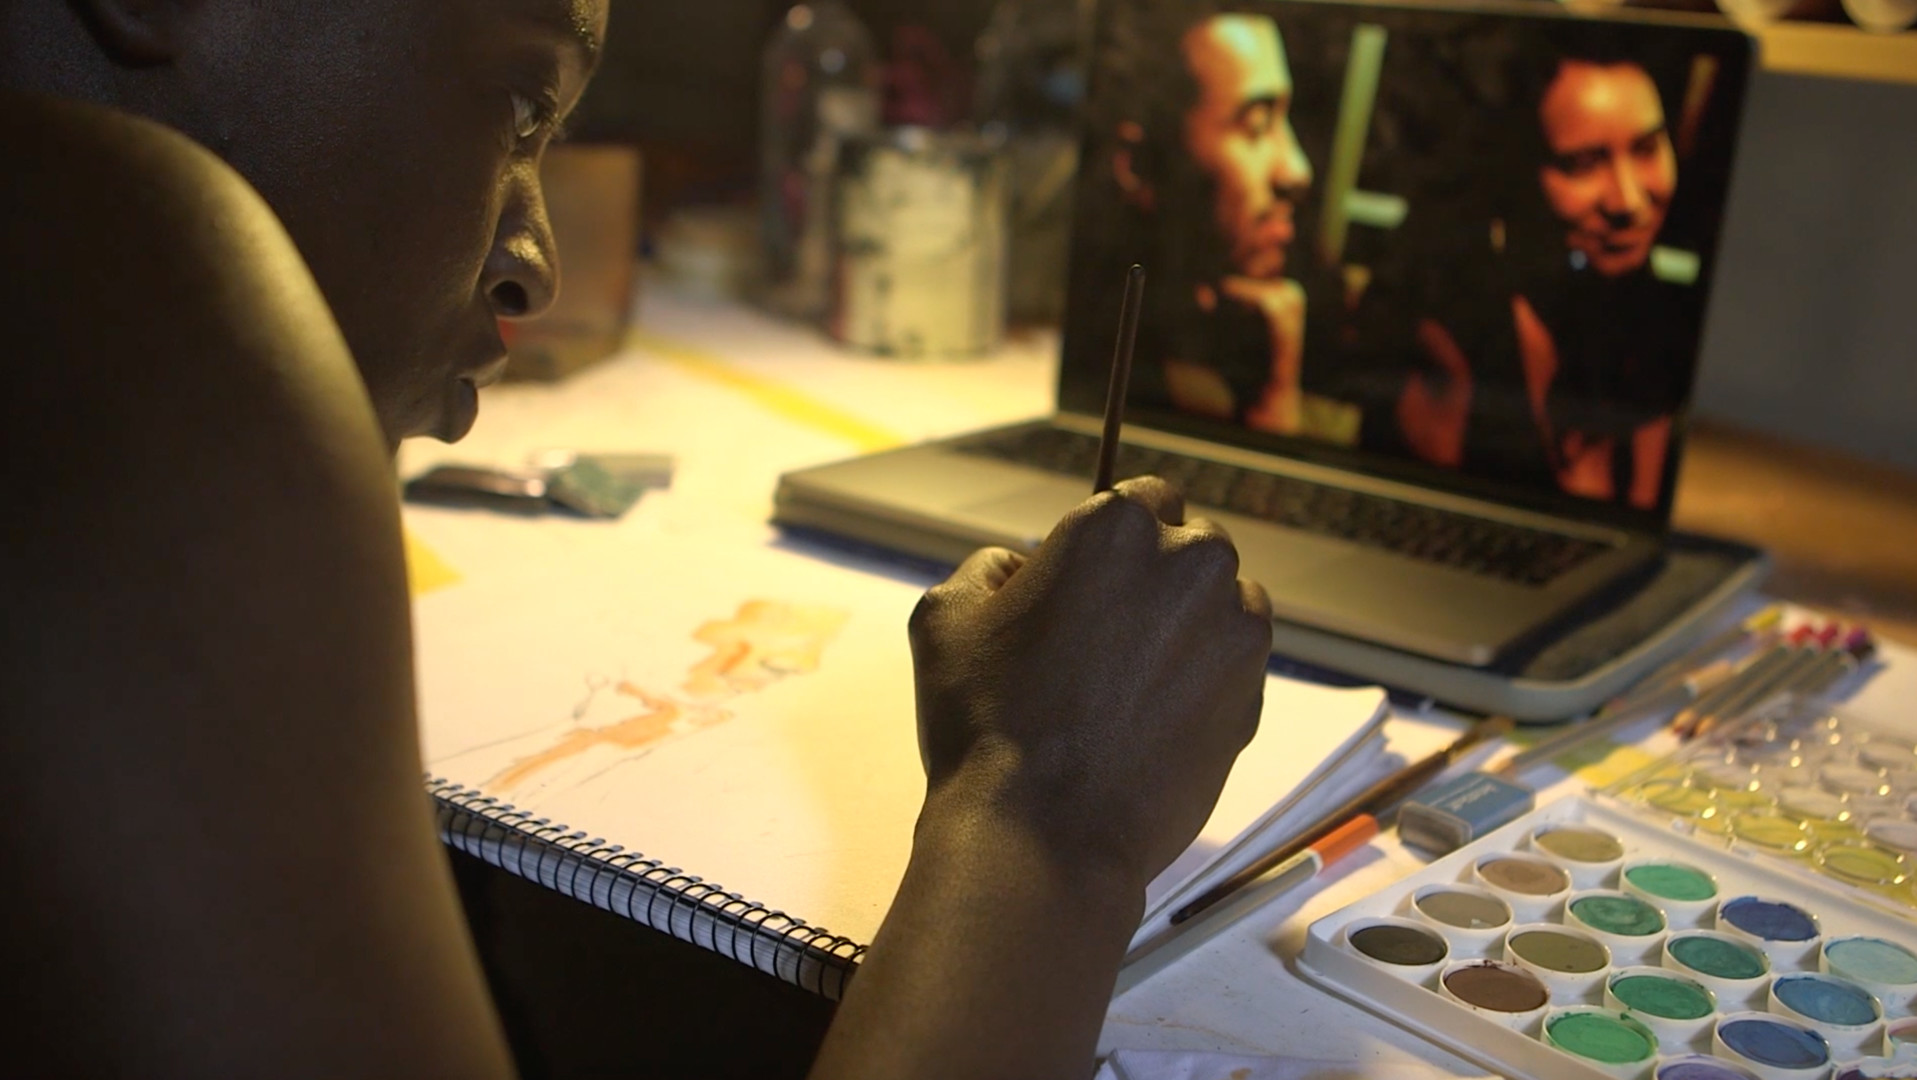 A person paints from a computer image